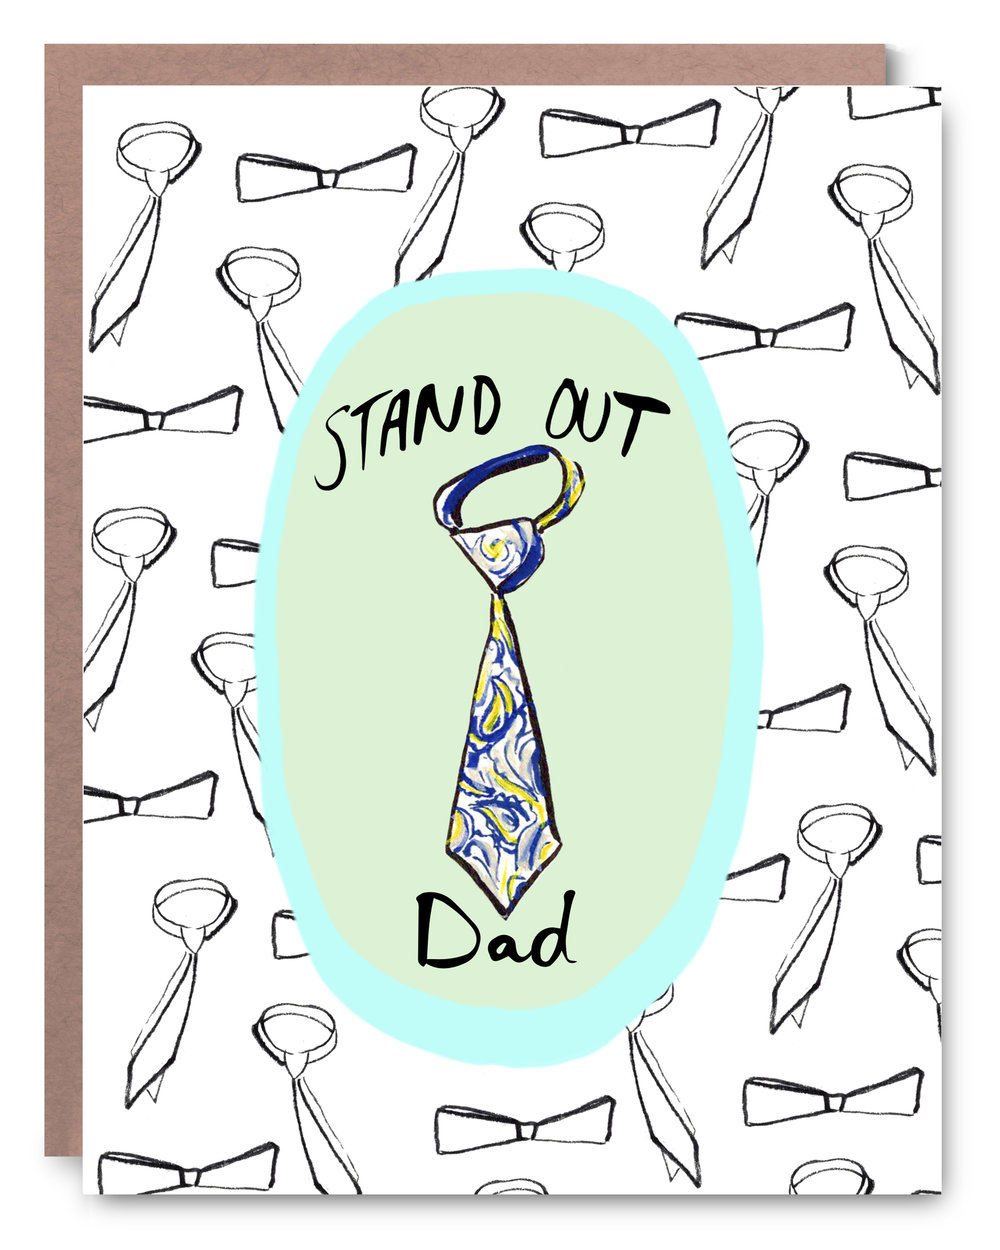 Stand Out Dad - Blank inside - 4.25 x 5.5""